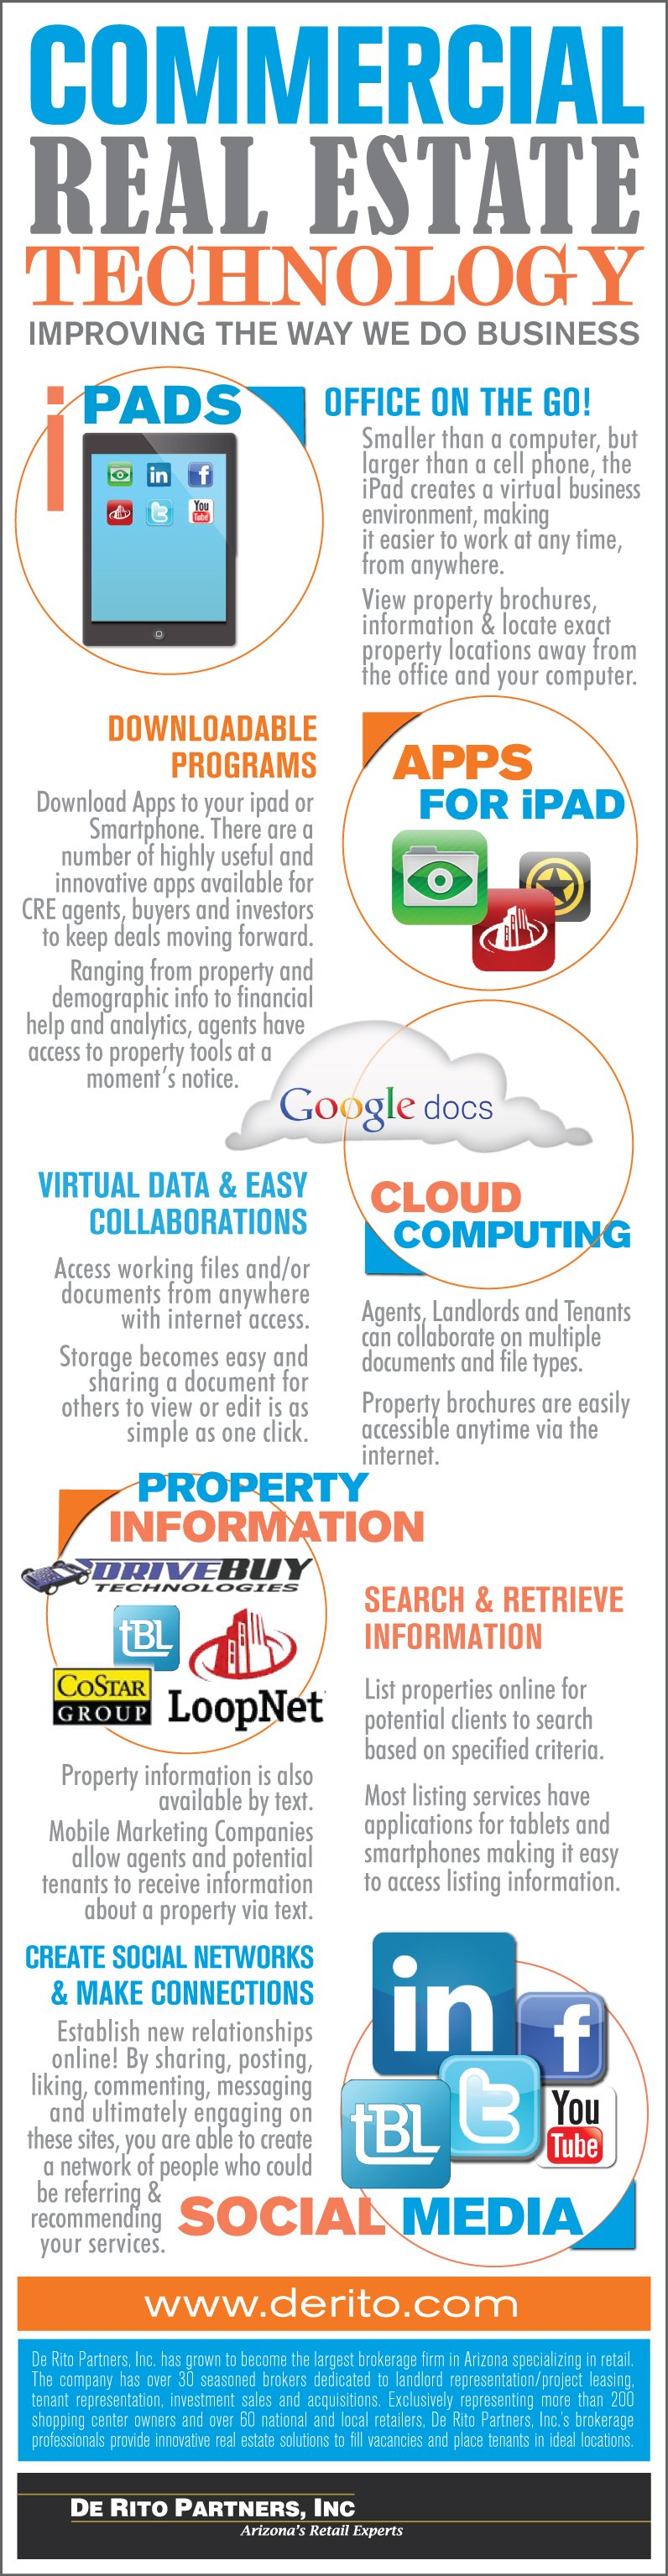 ArizonaRetail_Infographic_FINAL-TECH